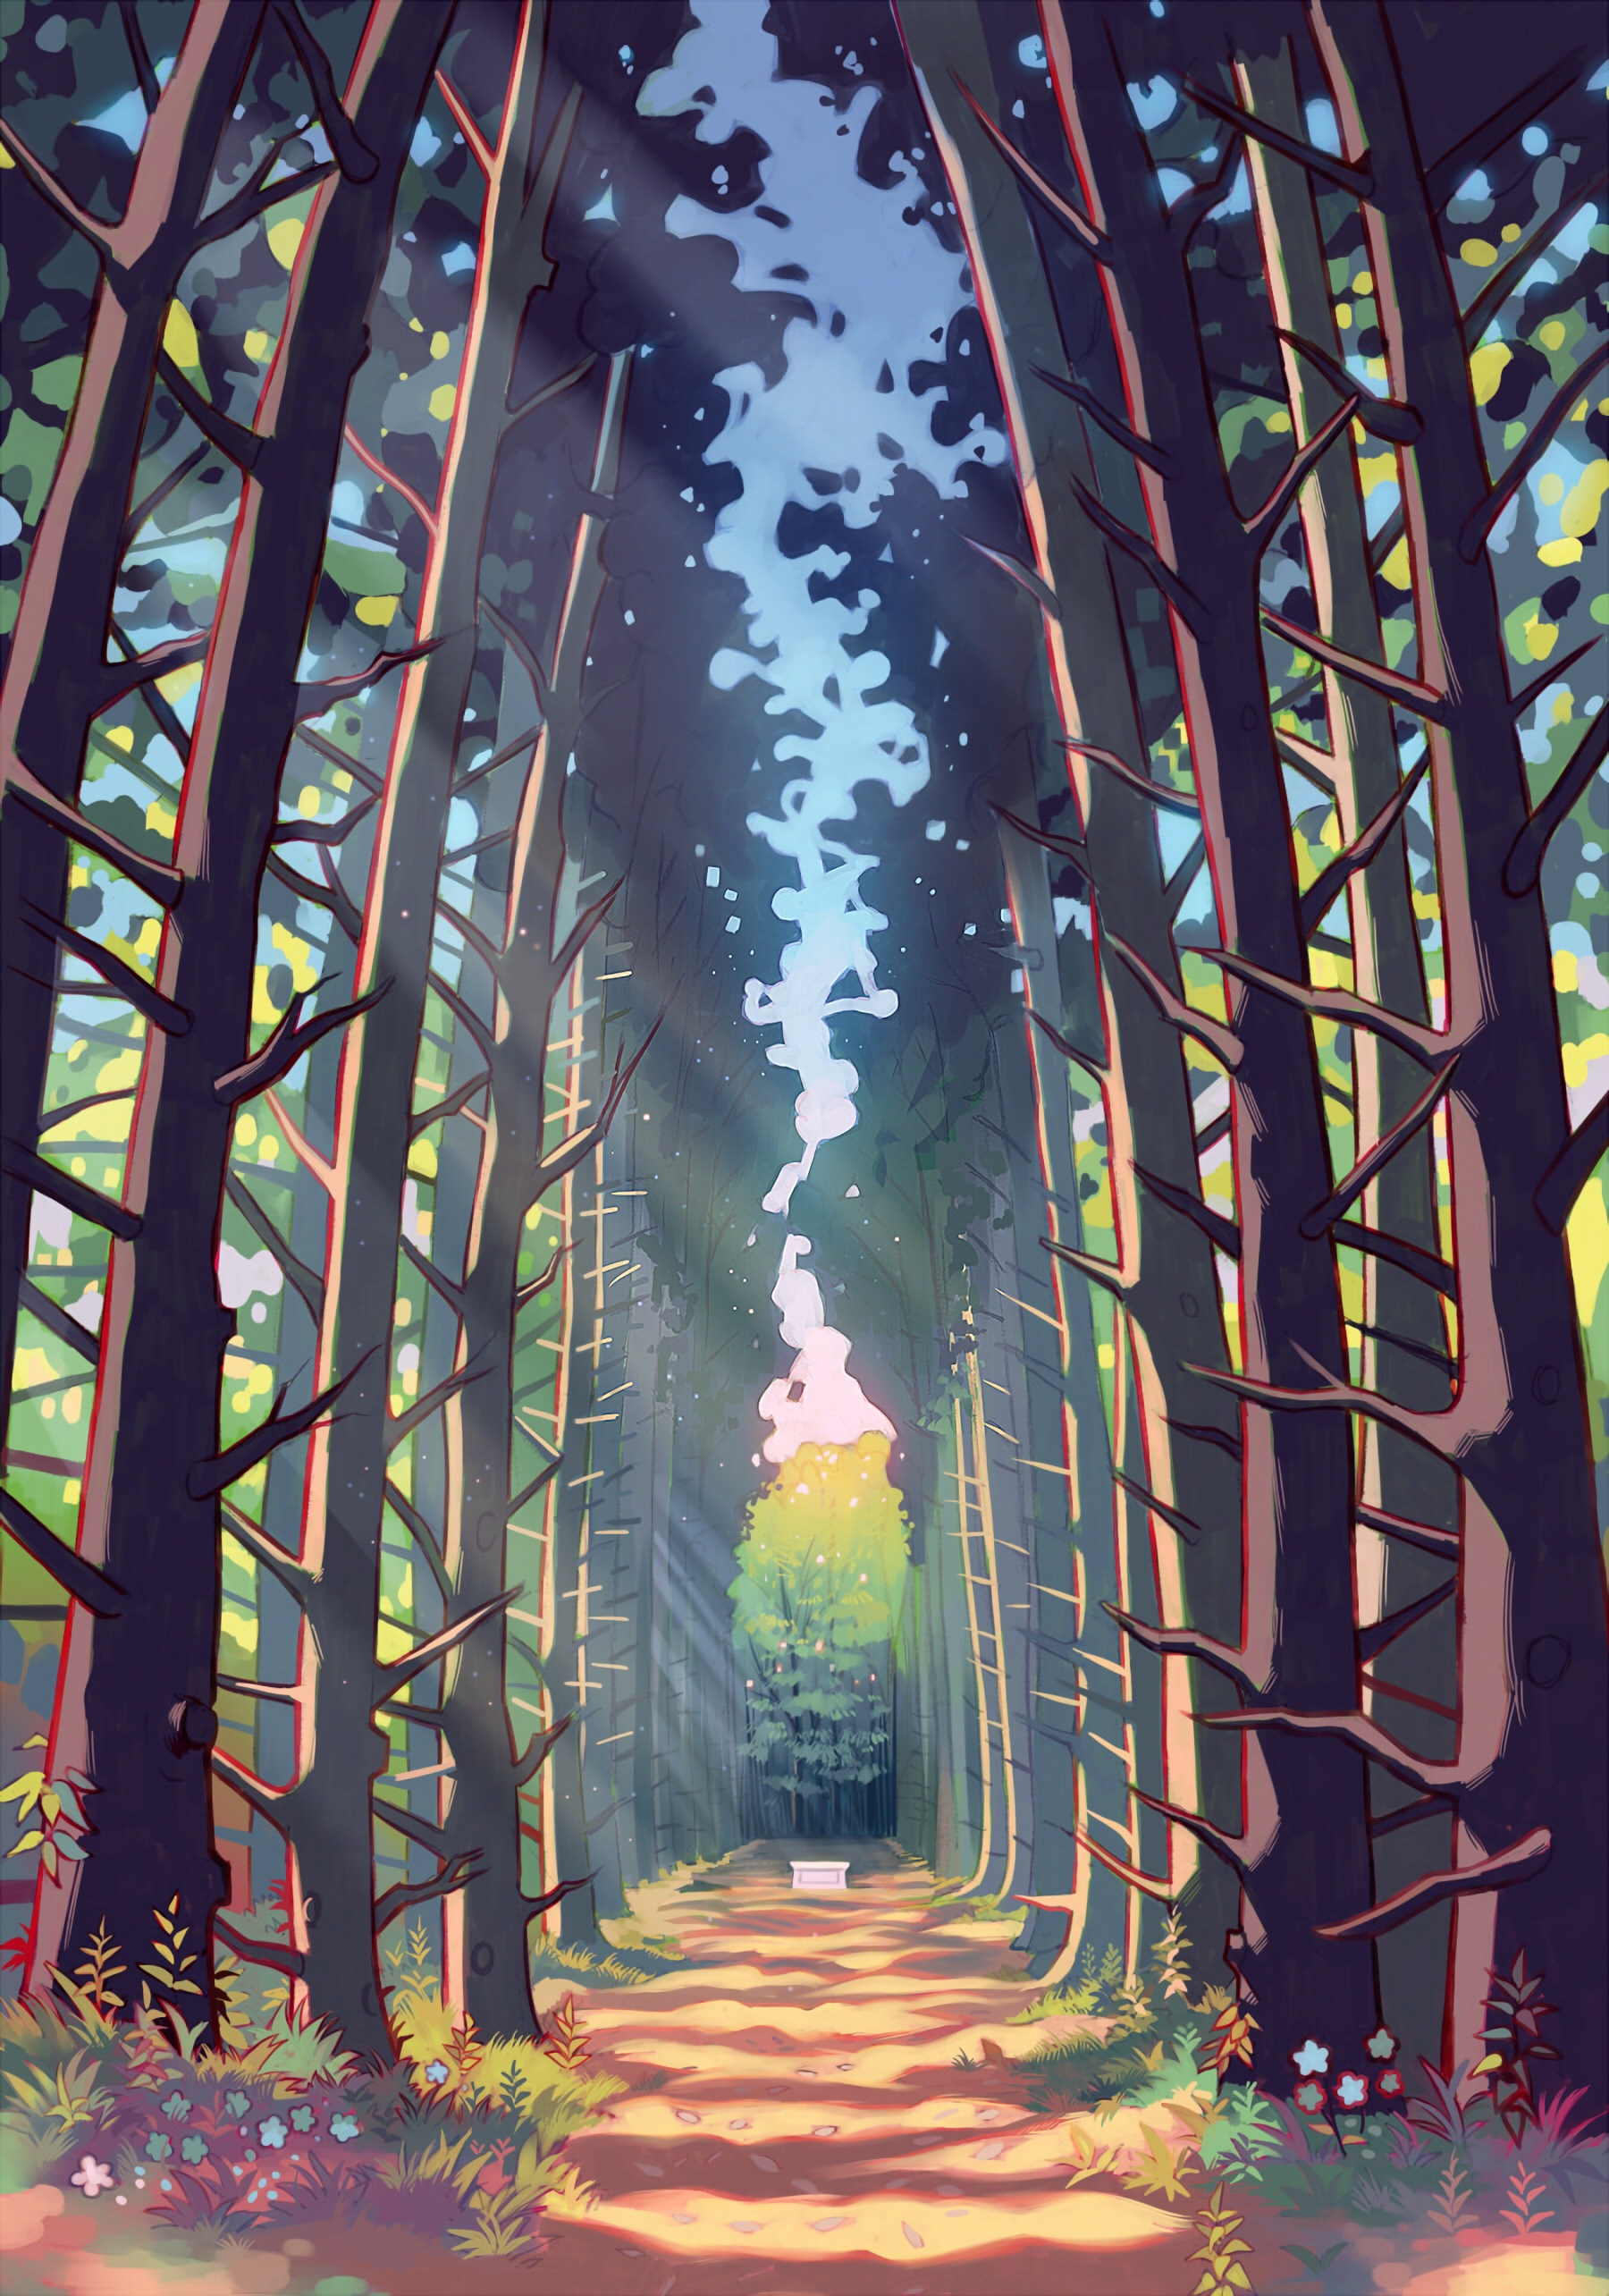 57925 free wallpaper 540x960 for phone, download images Trees, Art, Forest, Alley, Track 540x960 for mobile